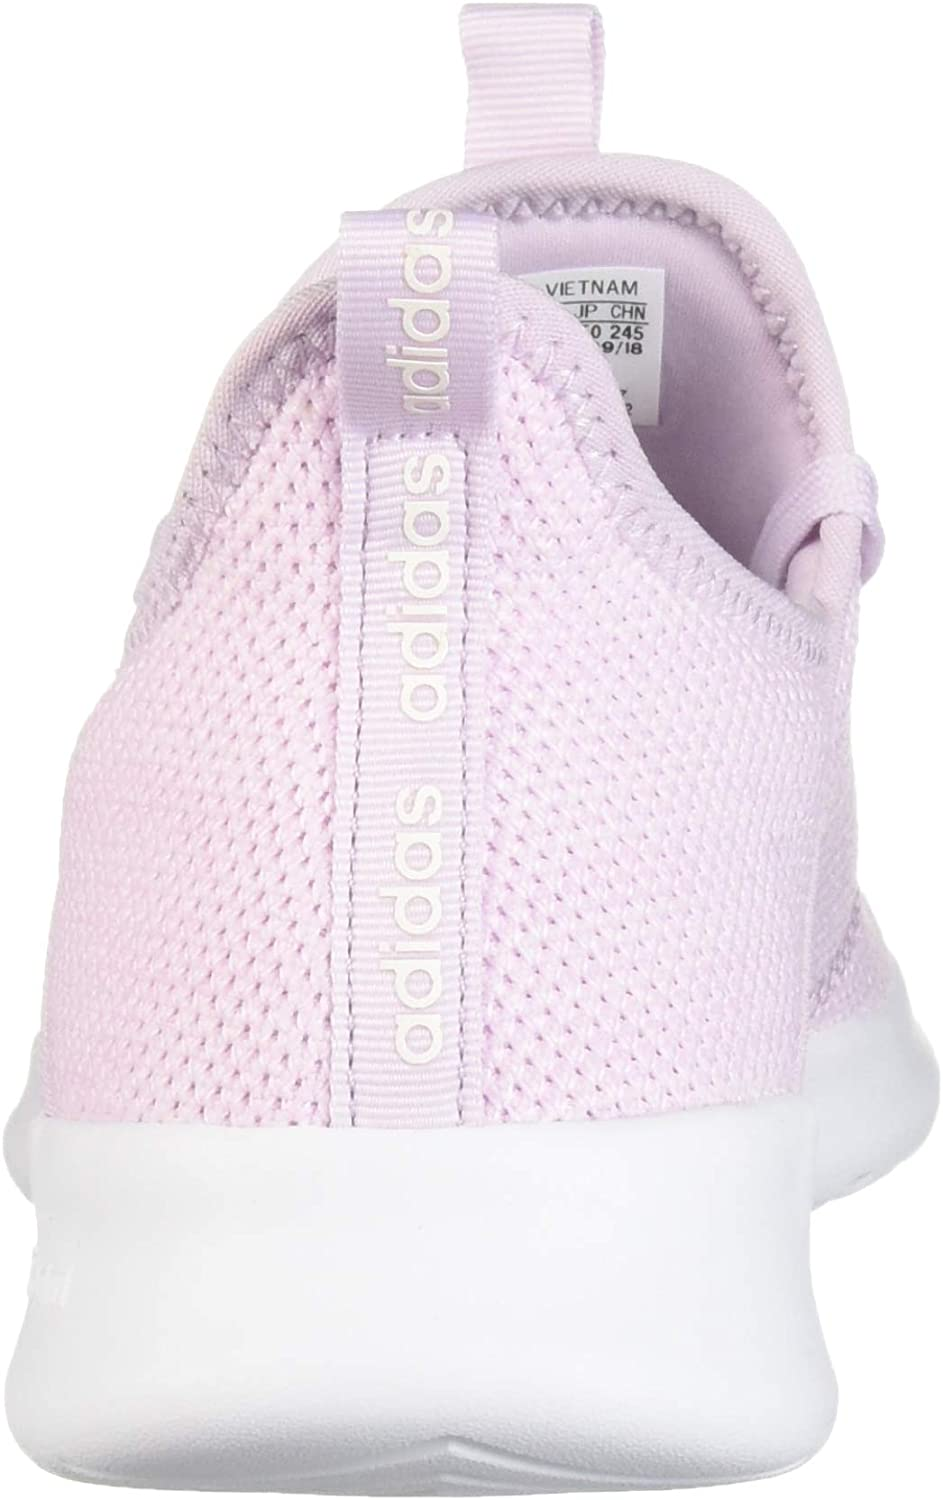 Running Pure Shoe adidas Women's Cloudfoam kuPXZi